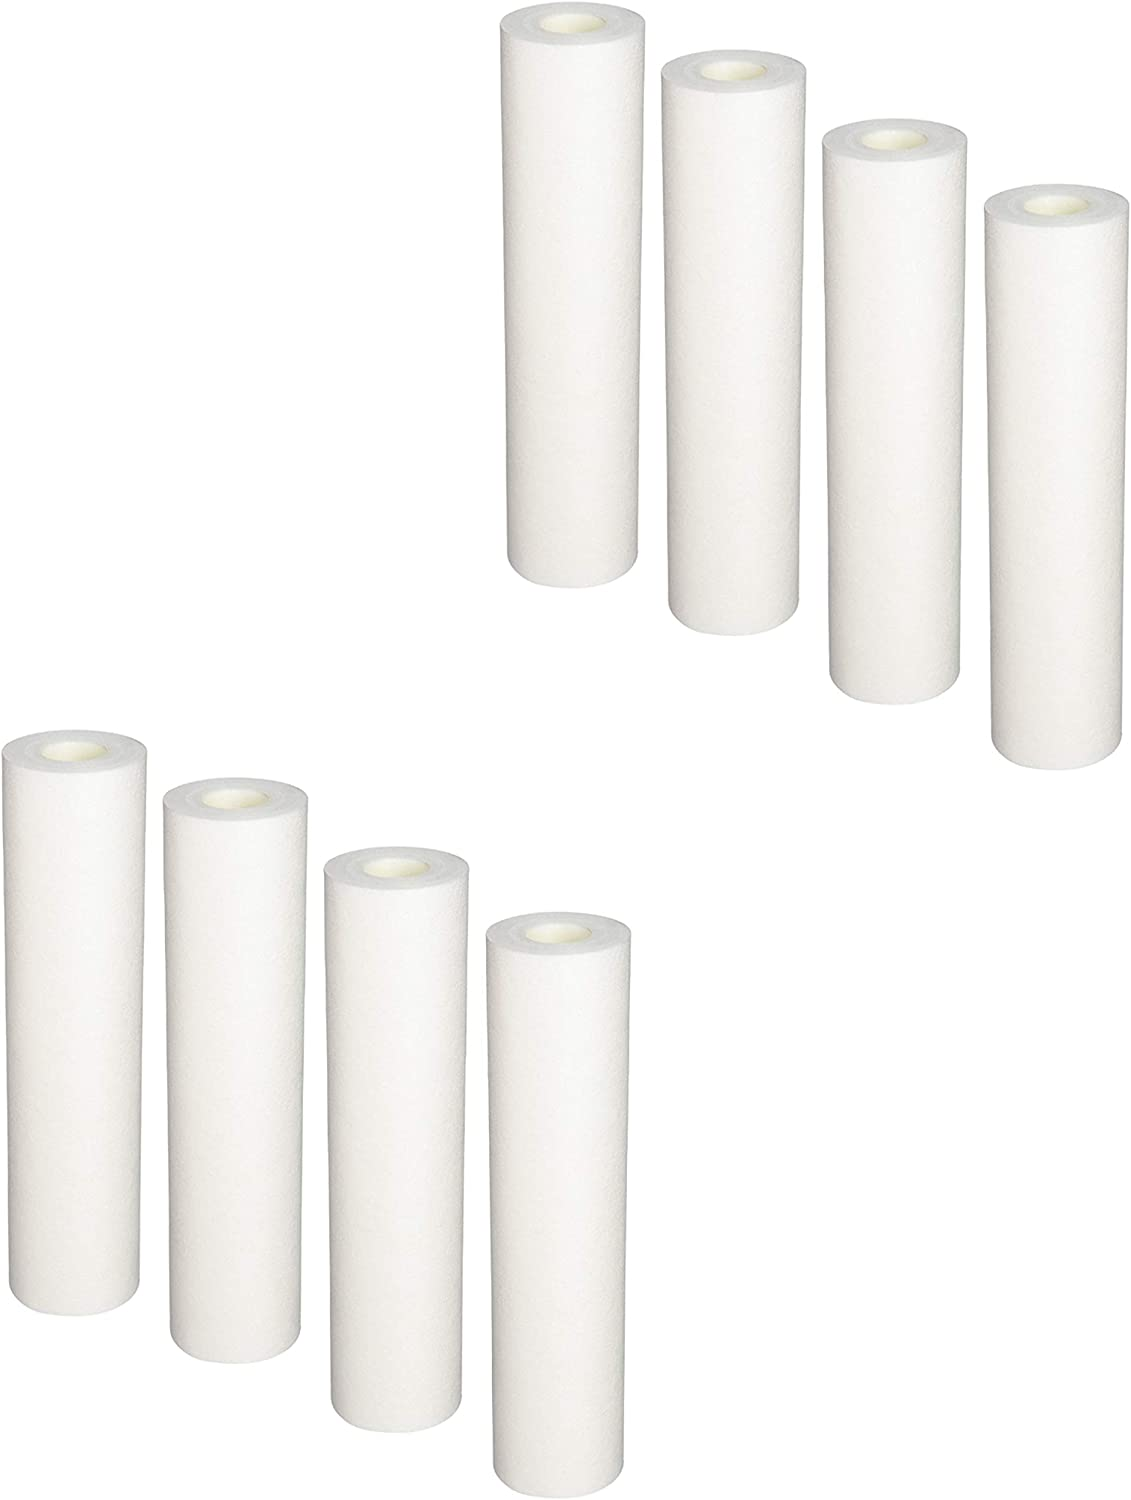 8-Pack Replacement PurePro G-107MR Polypropylene Sediment Filter - Universal 10-inch 5-Micron Cartridge for PurePro G-Series 7 Stage RO System by CFS